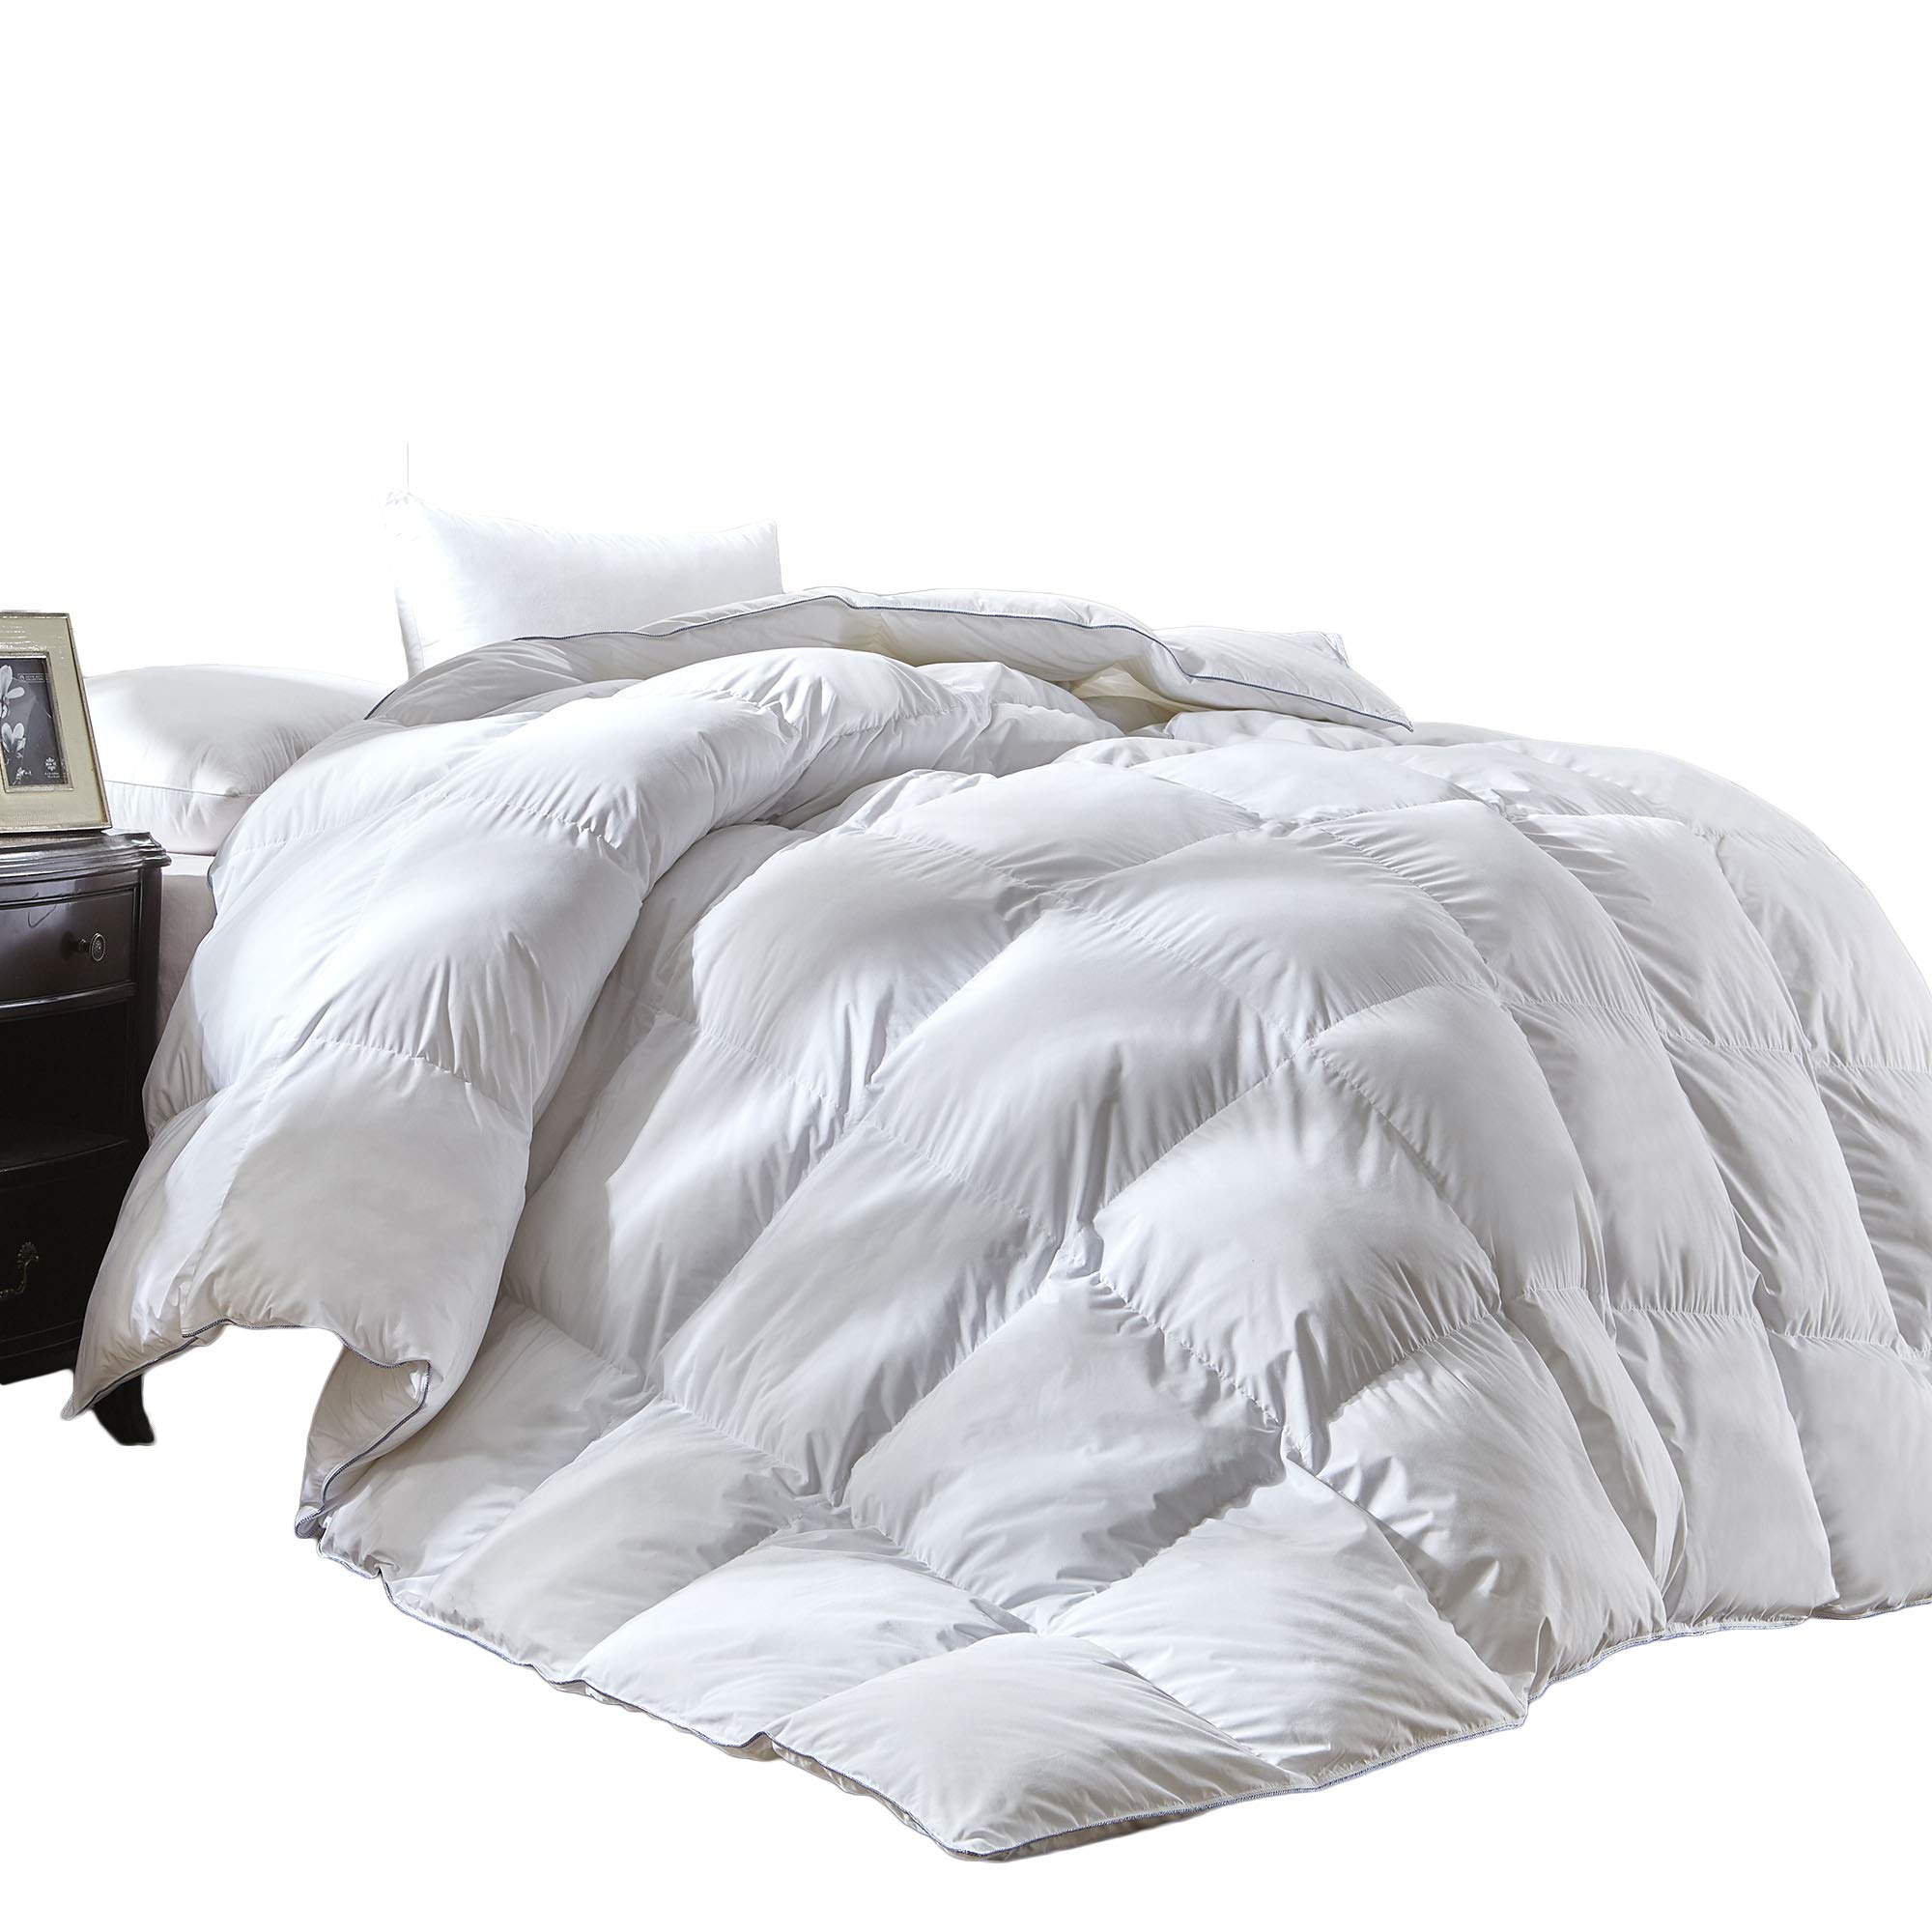 THREE GEESE Luxury Twin Size White Goose Down Feather Comforter Duvet Insert Goose Down All Seasons 600 Thread Count Hypoallergenic 100% Cotton Shell Down Proof,Baffle Box Stitched.